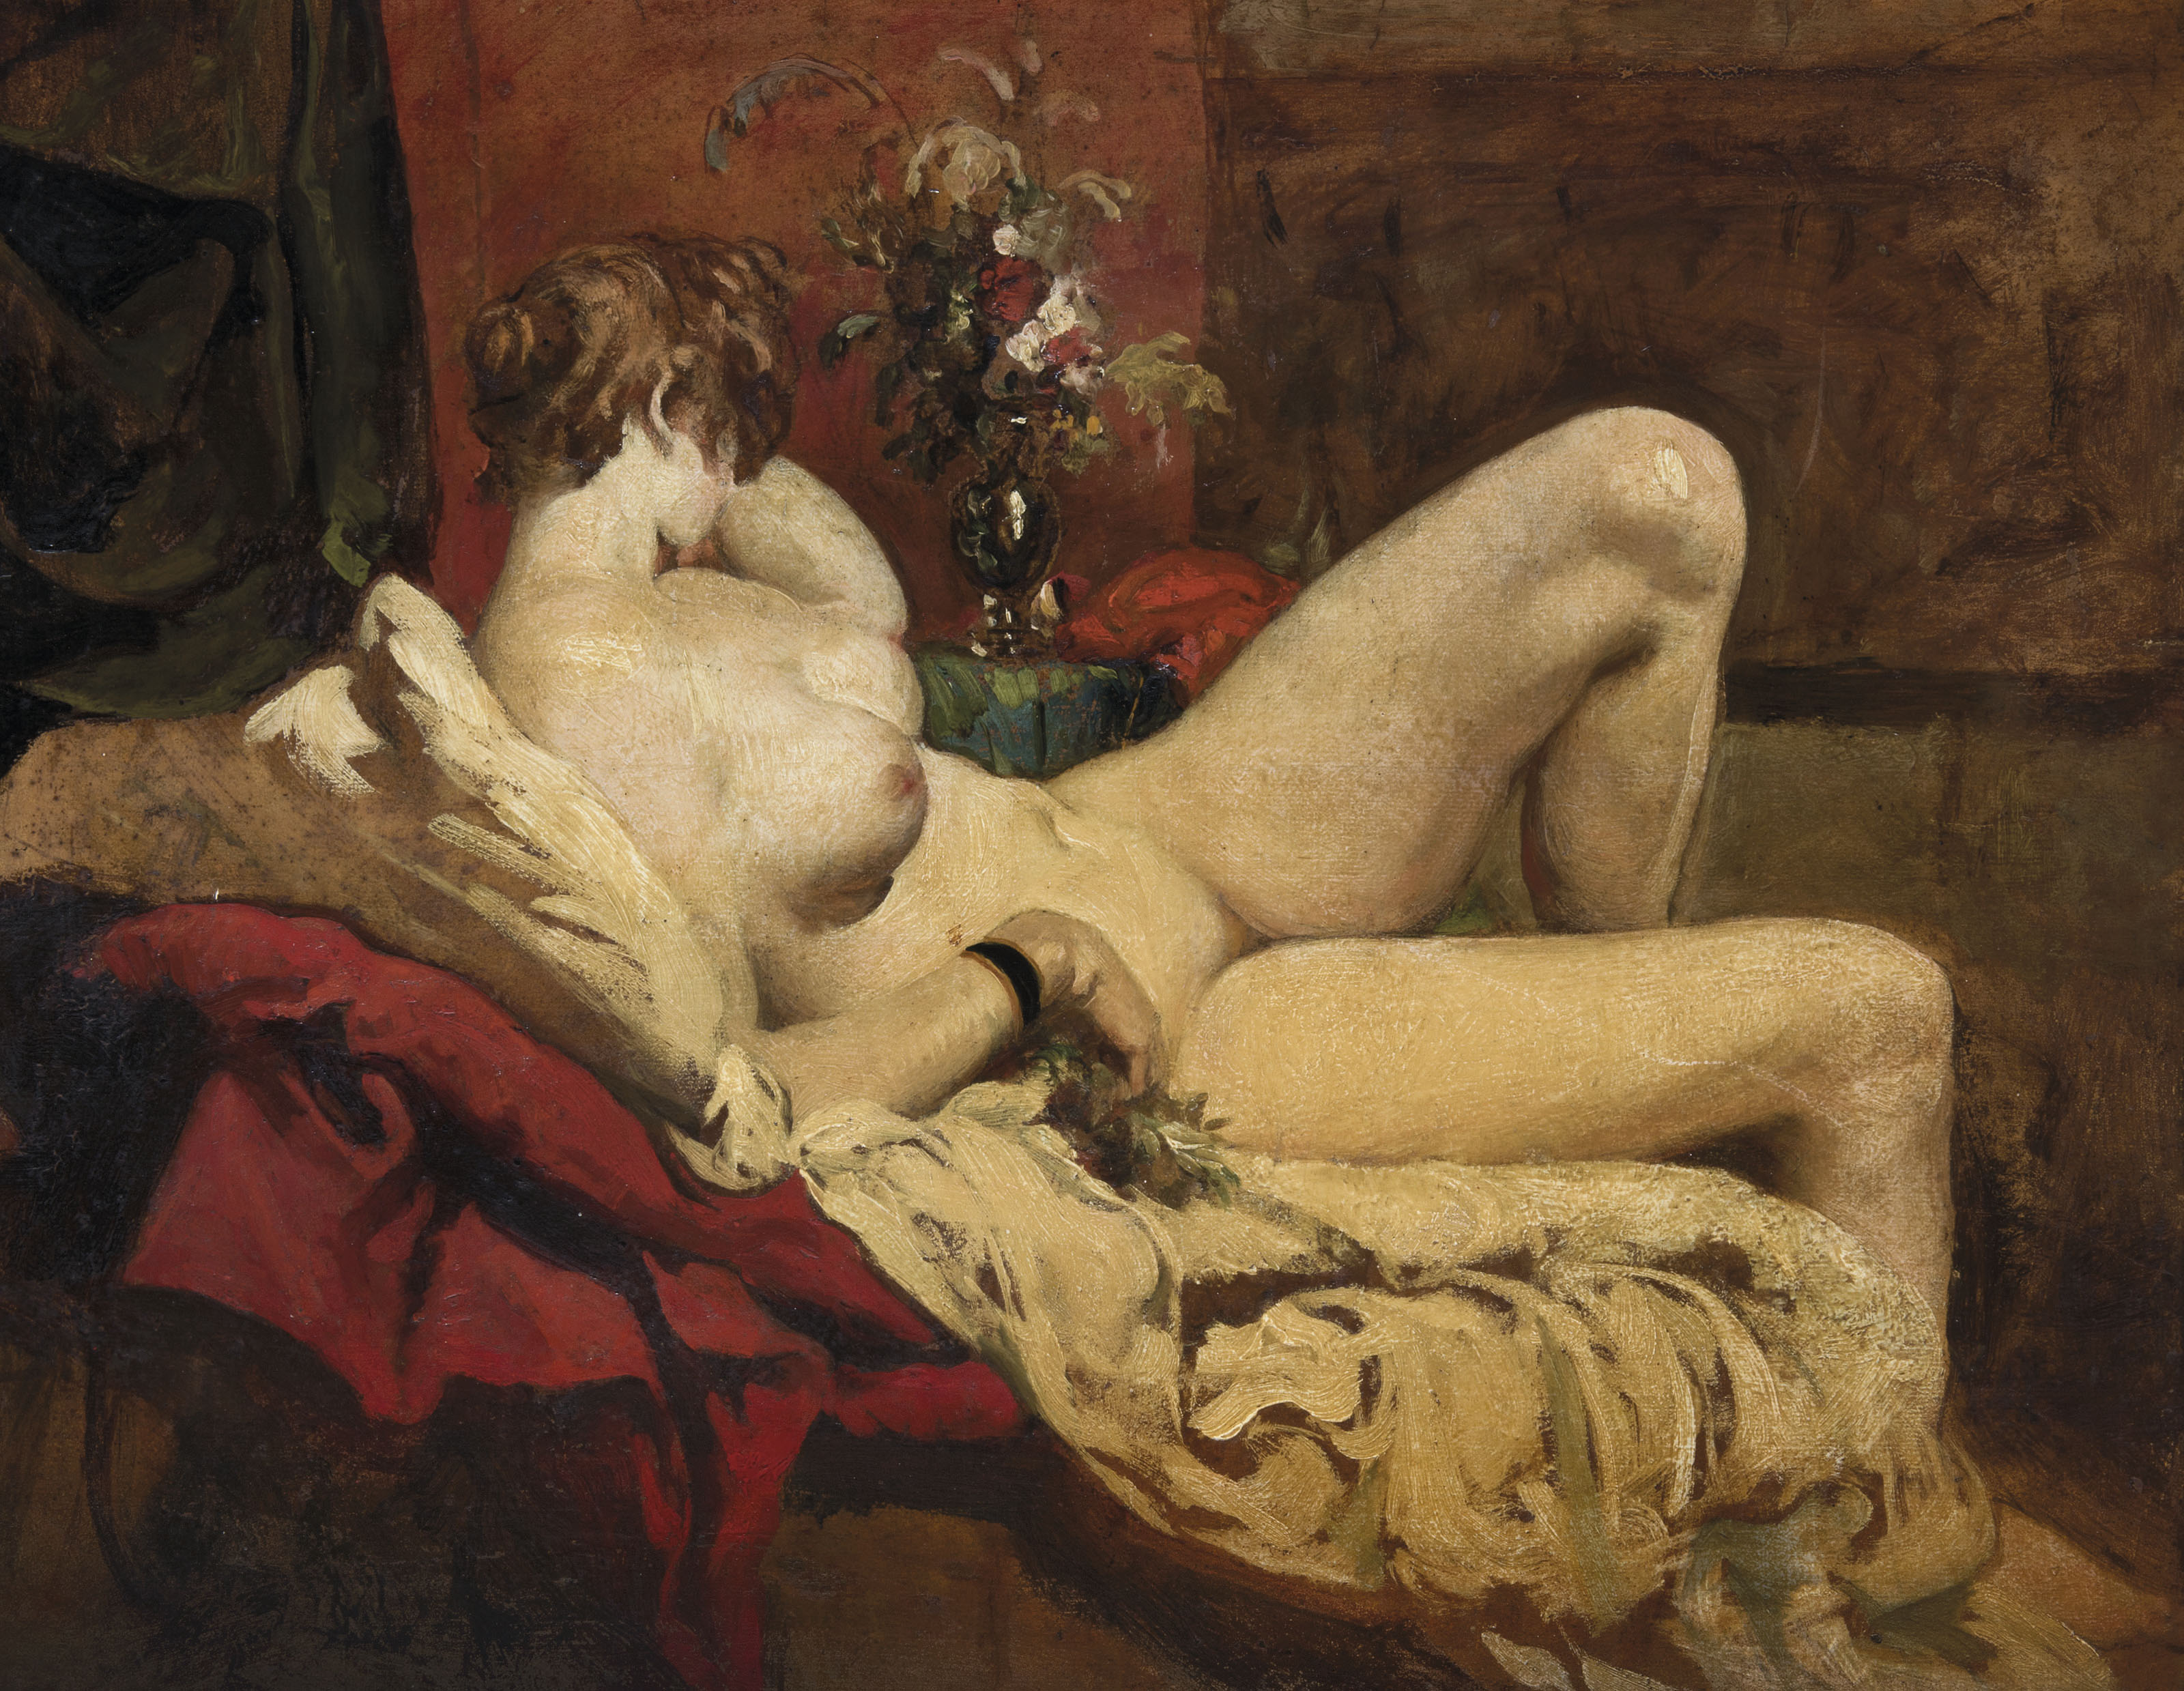 Attributed to William Etty, R.A. (1787-1849)